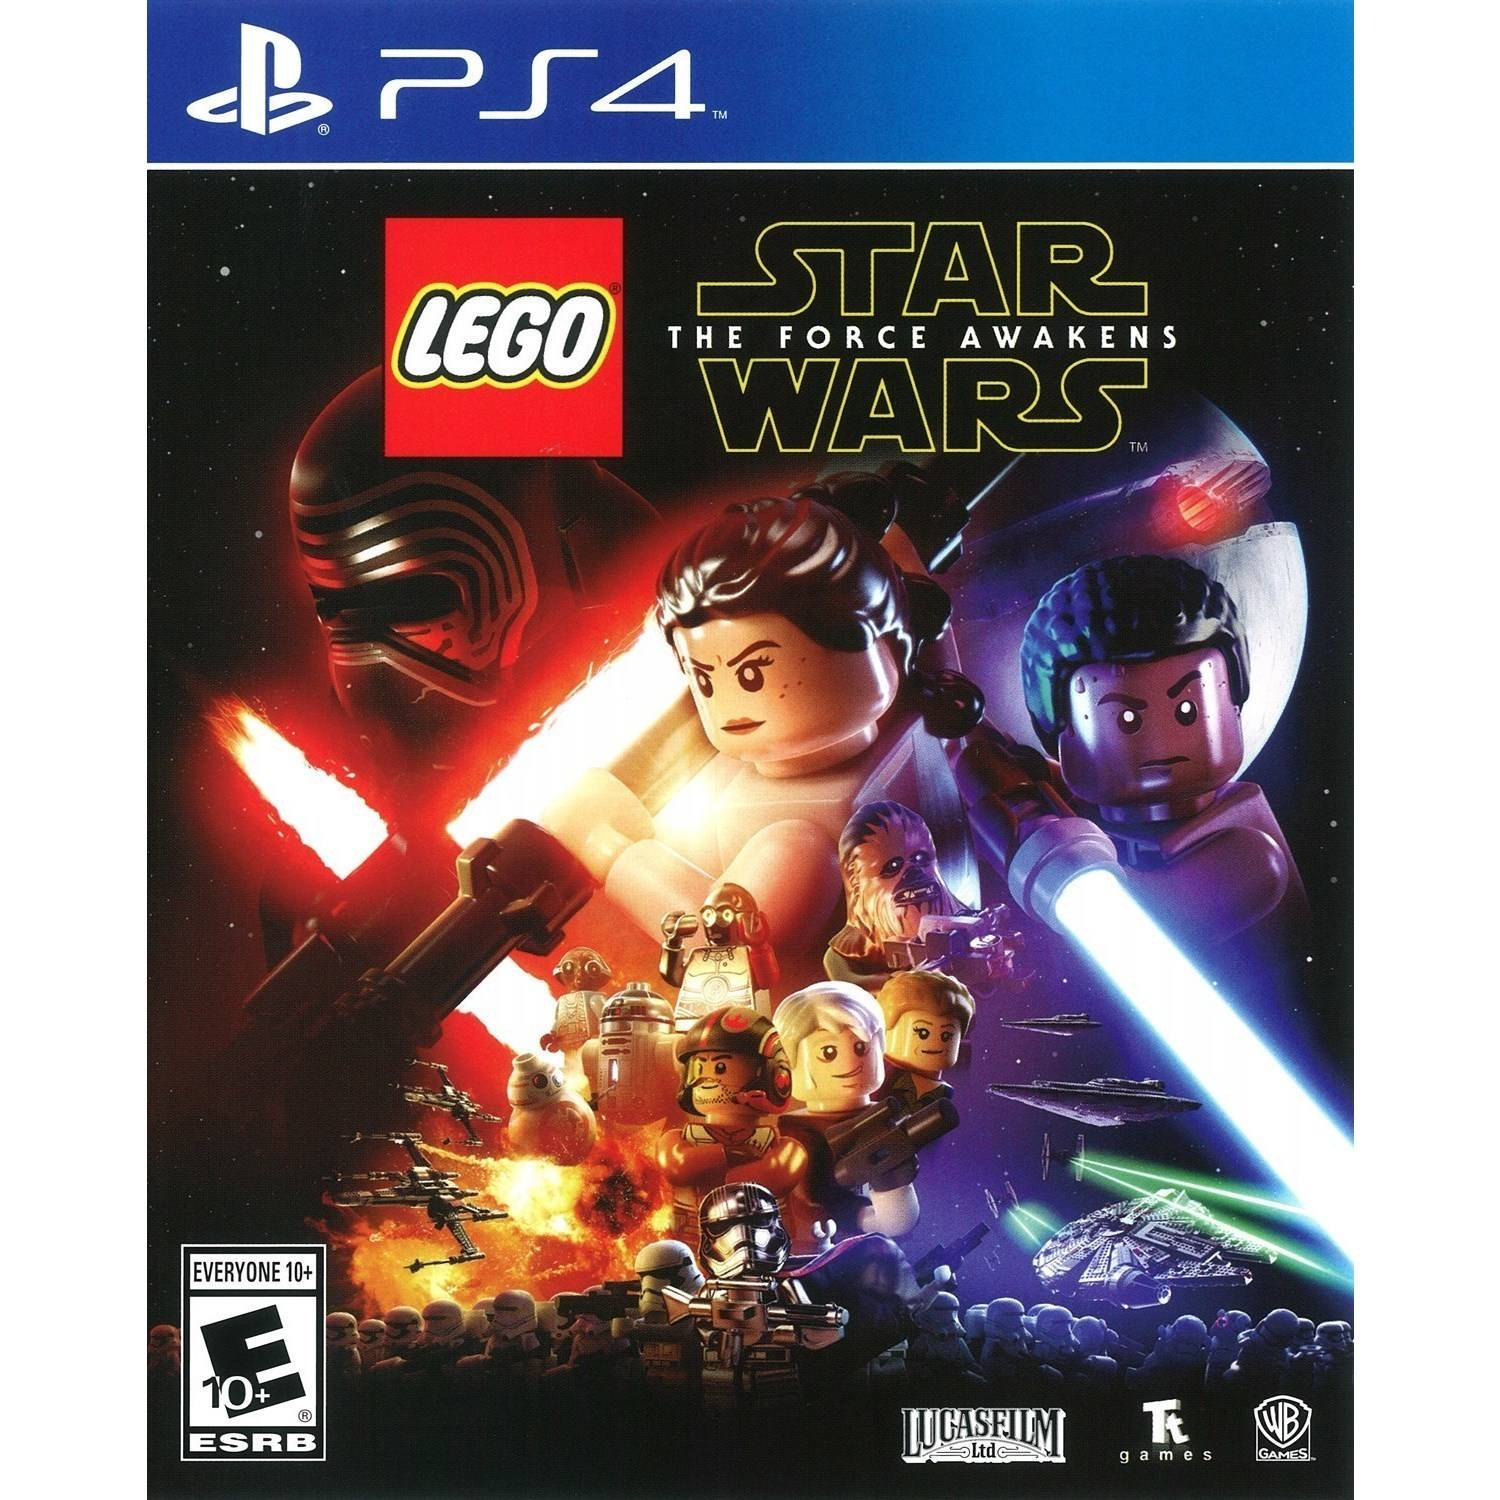 Lego Star Wars: The Force Awakens for PlayStation 4 by Warner Bros